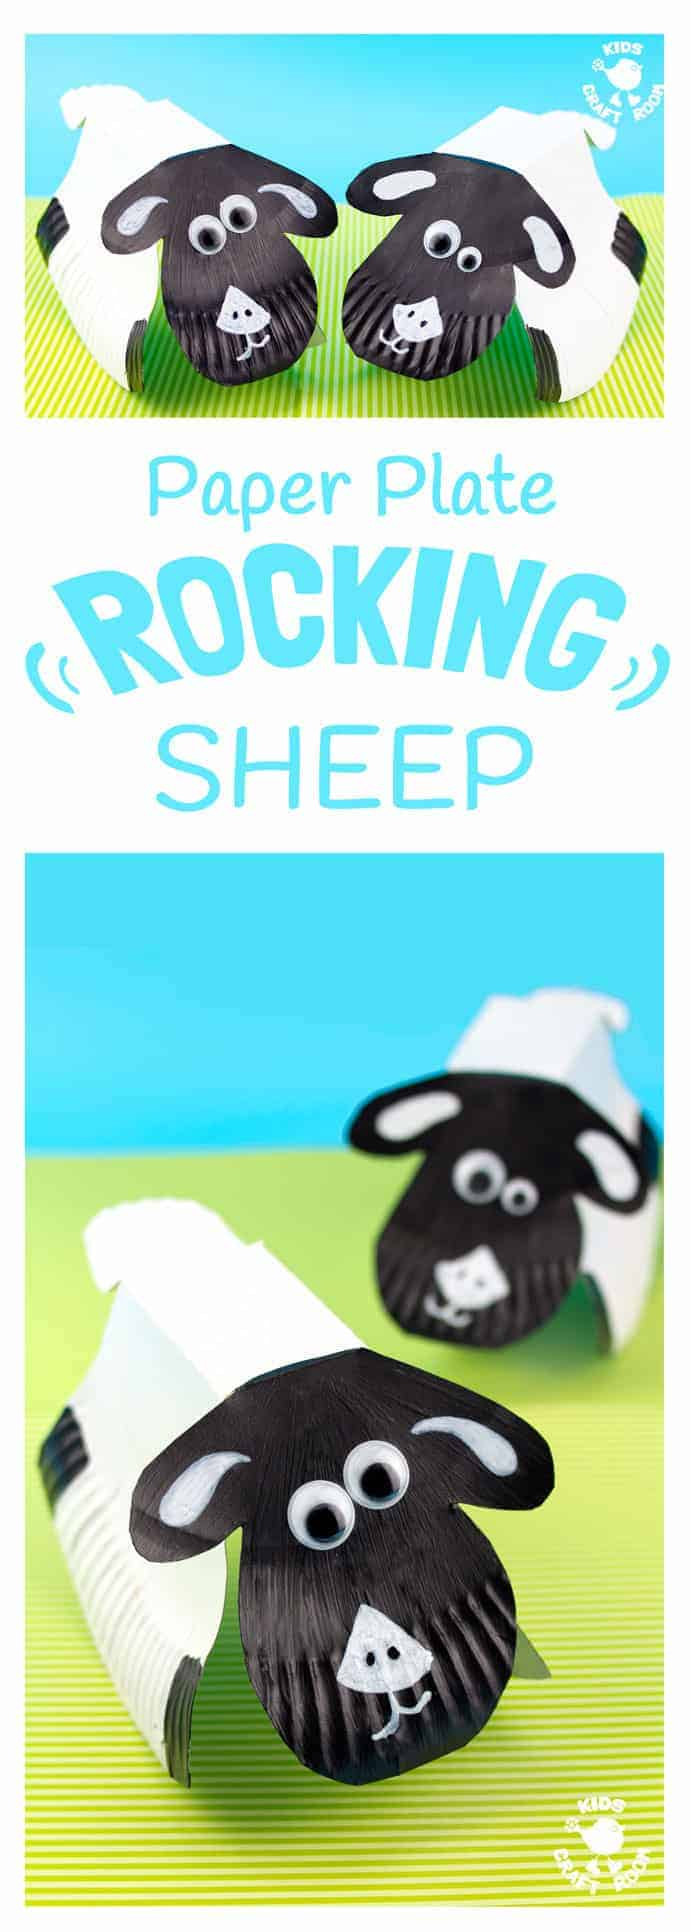 ROCKING PAPER PLATE SHEEP CRAFT - (free template) This rocking sheep or lamb craft is easy to make and so much fun! The movement really brings this animal craft to life. A paper plate craft the kids will enjoy playing with again and again. #springcrafts #summercrafts #sheep #lambs #paperplatecrafts #paperplates #sheepcrafts #lambcrafts #kidscrafts #craftsforkids #kidsactivities #kidscraftroom #printable  #easter #eastercrafts #animalcrafts